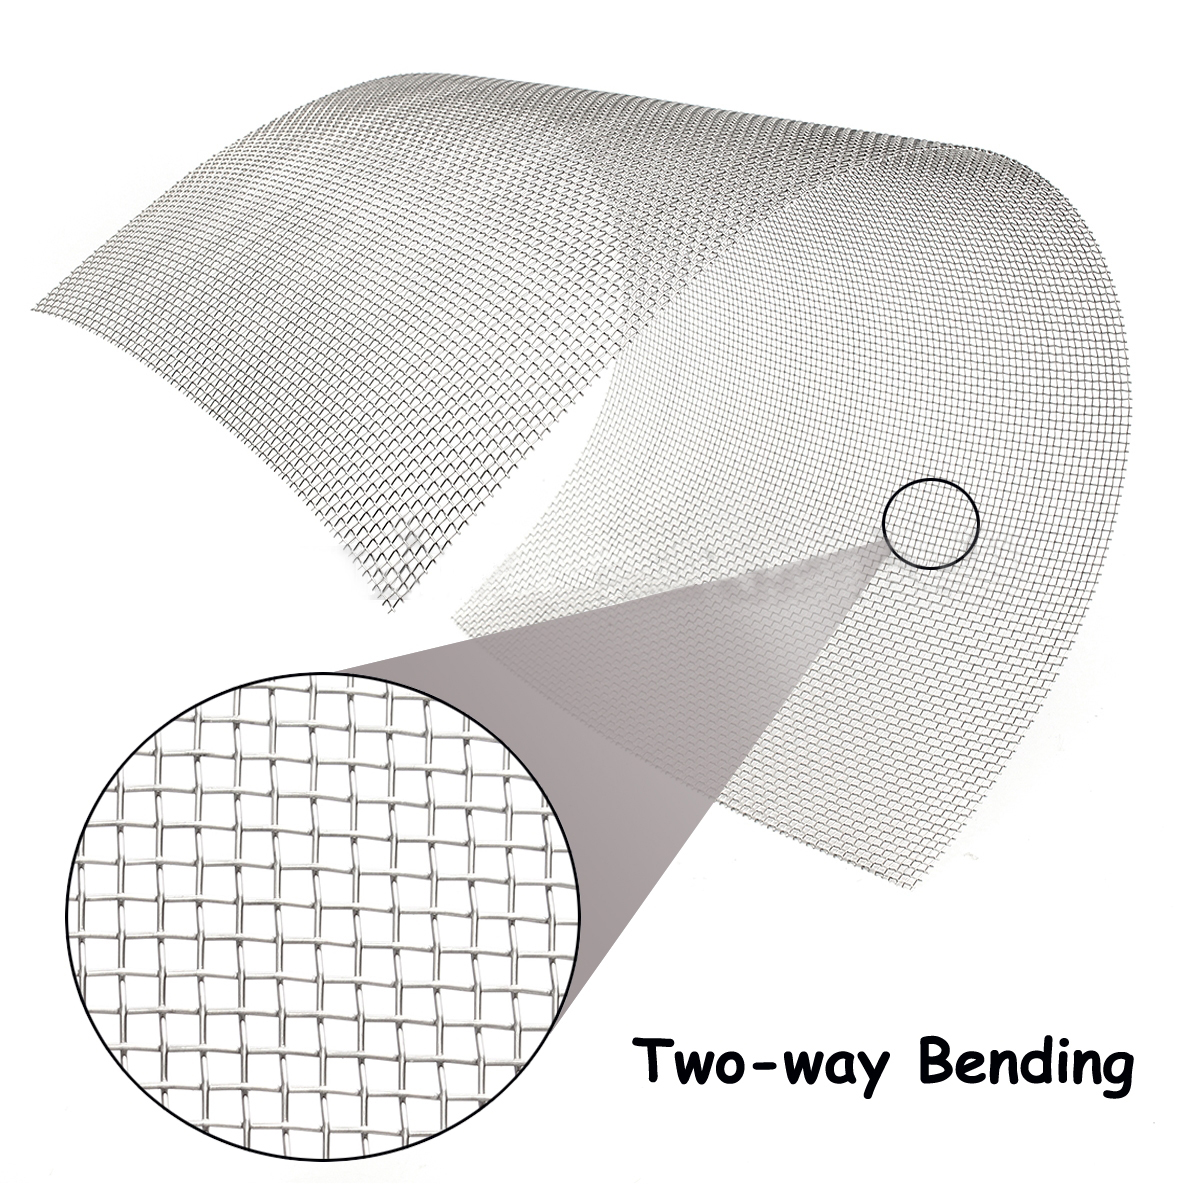 Mayitr 1pc 304 Stainless Steel Mesh 8 Mesh Wire Cloth Screen 30cmx60cm For Cooking Nets 0 127mm standard stainless steel wire brush for metal anilox roller